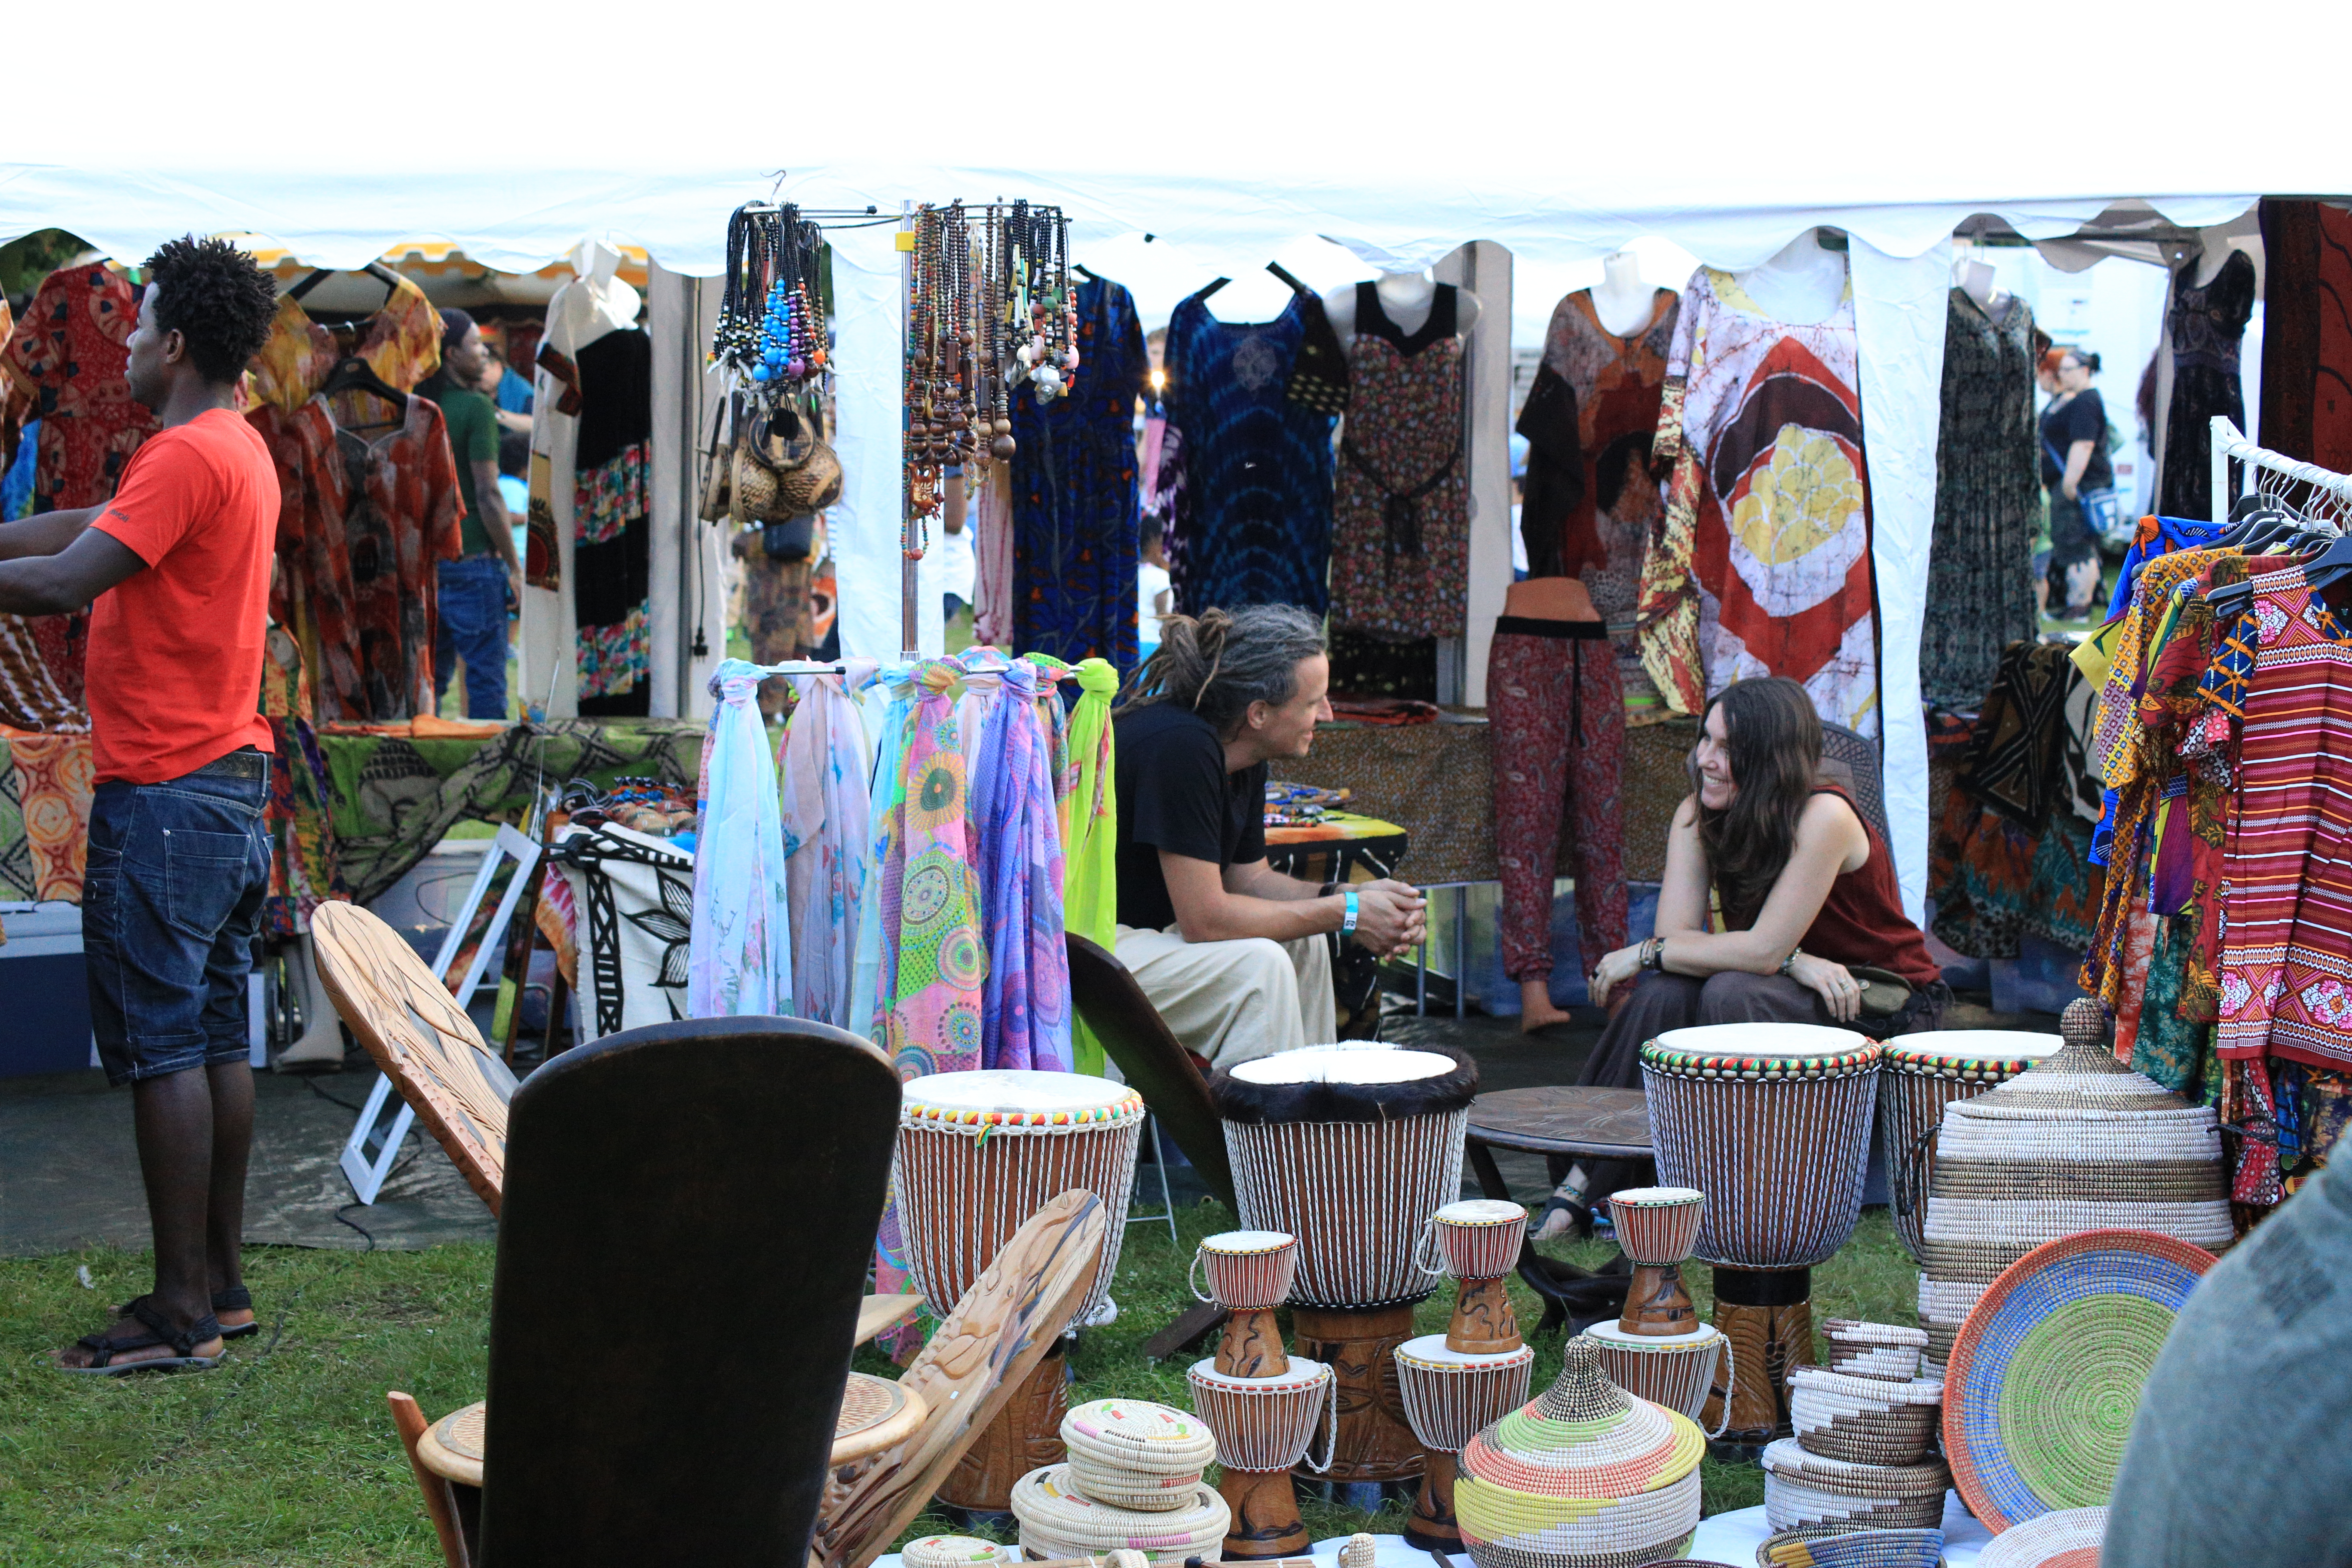 afrika markt afrikanisches karibisches kulturfest in frankfurt am main. Black Bedroom Furniture Sets. Home Design Ideas